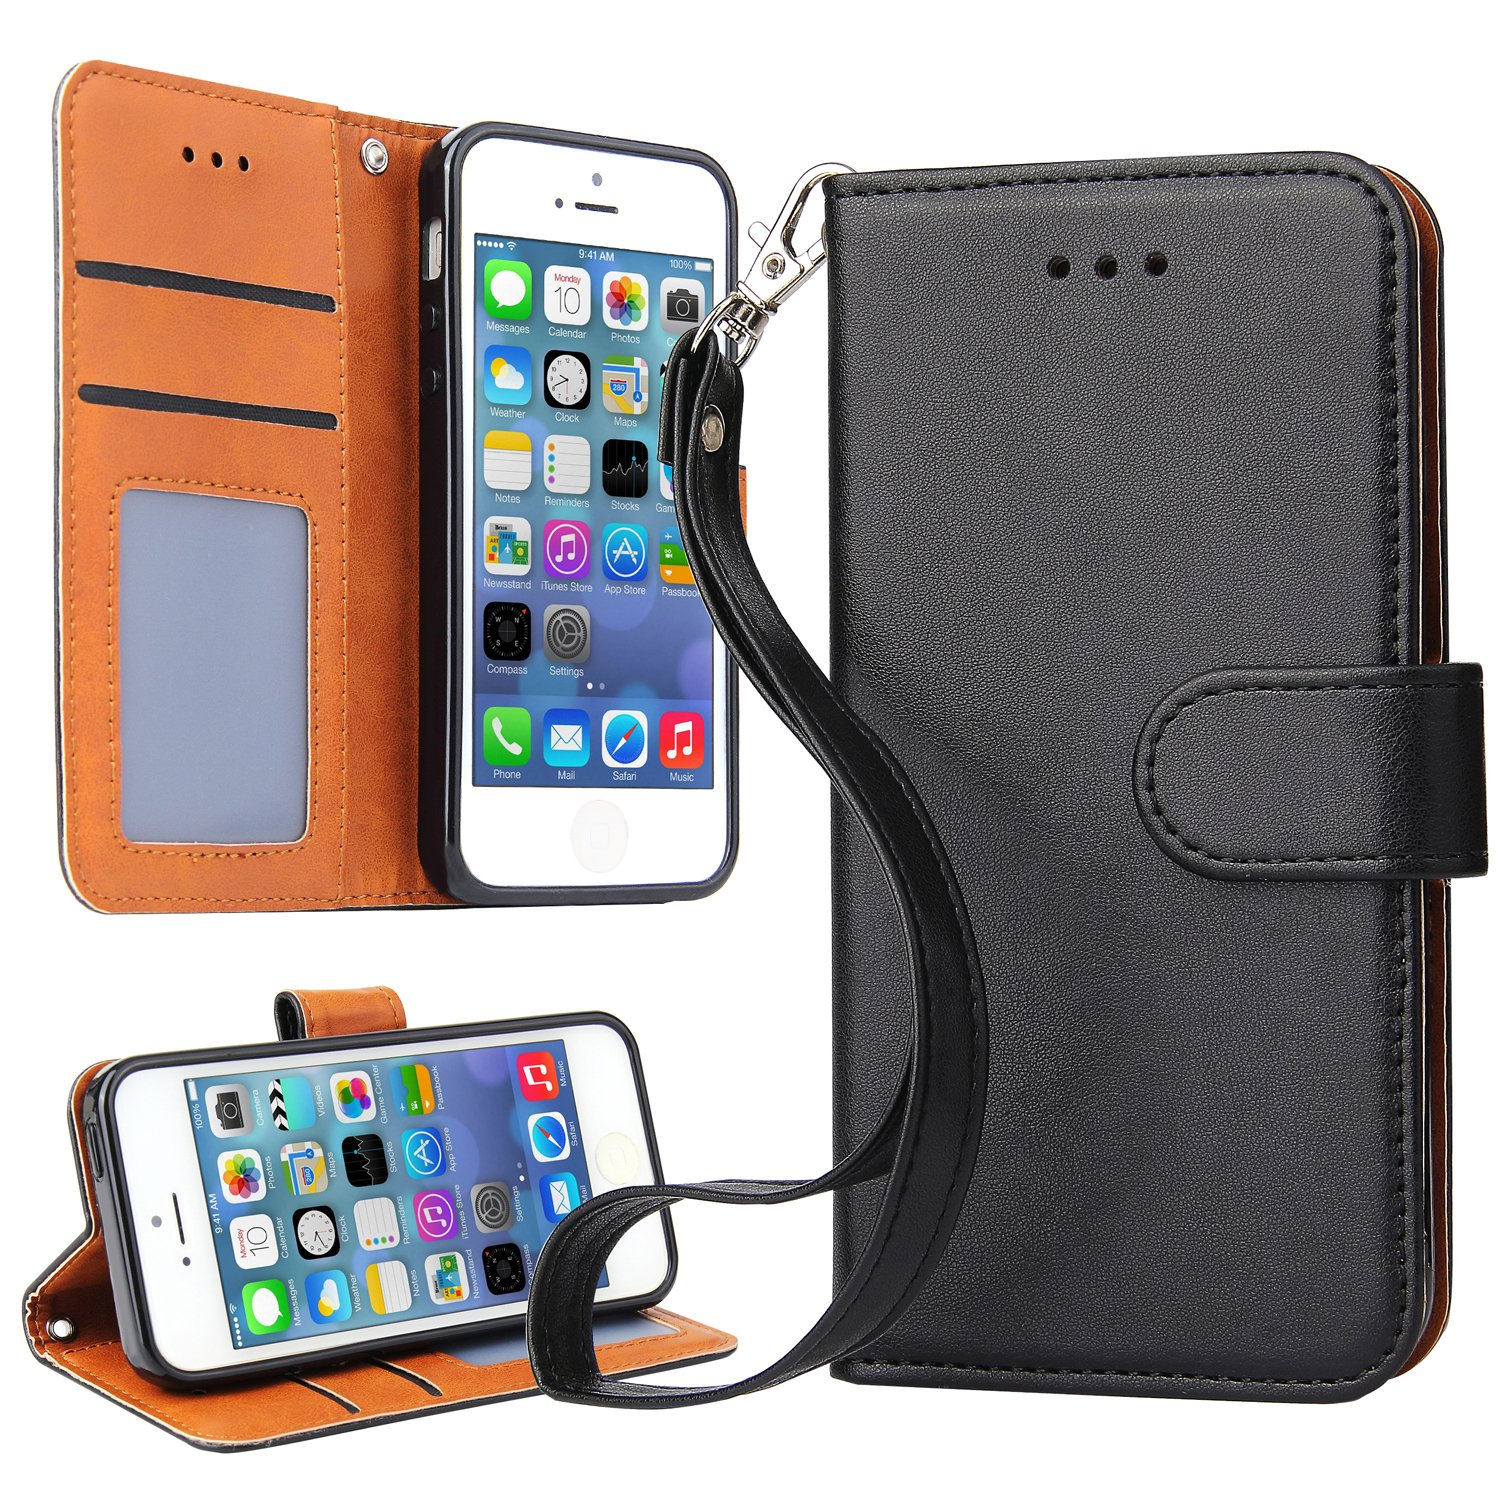 iPhone SE Case, iPhone 5S Case, OKILA Book Style Slim Wallet Case with Kickstand Feature and Card Slot for Apple iPhone SE/5S/5 Phone Leather Case Cover (Black)